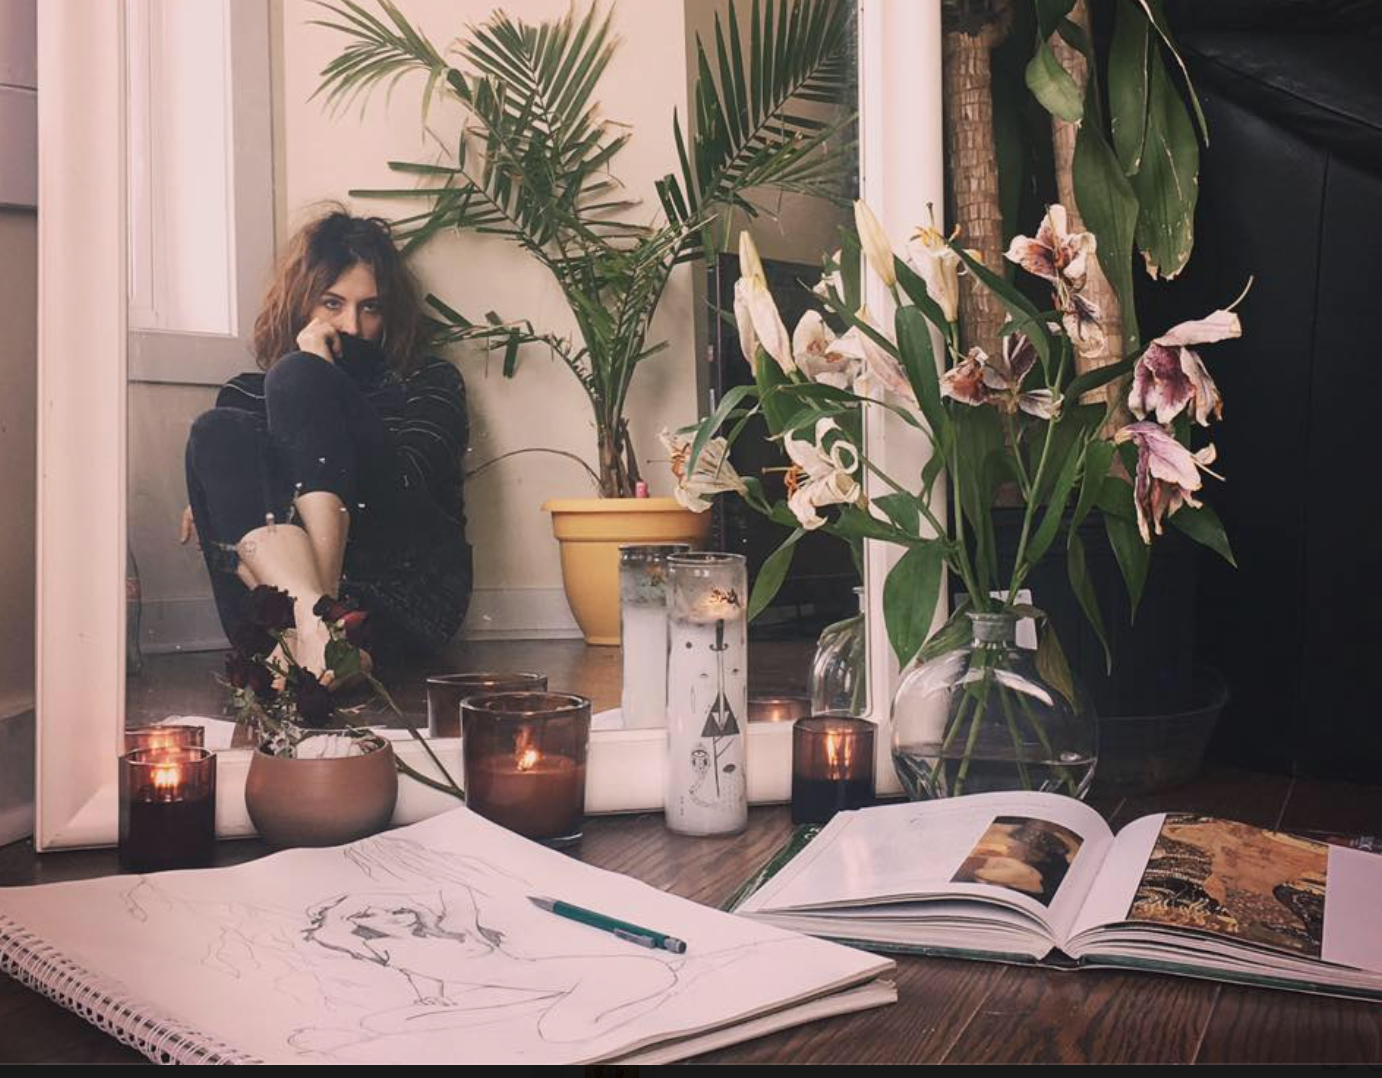 We spoke to Natalee Miller, the zodiac and tarot artist who will make your cosmic dreams come true